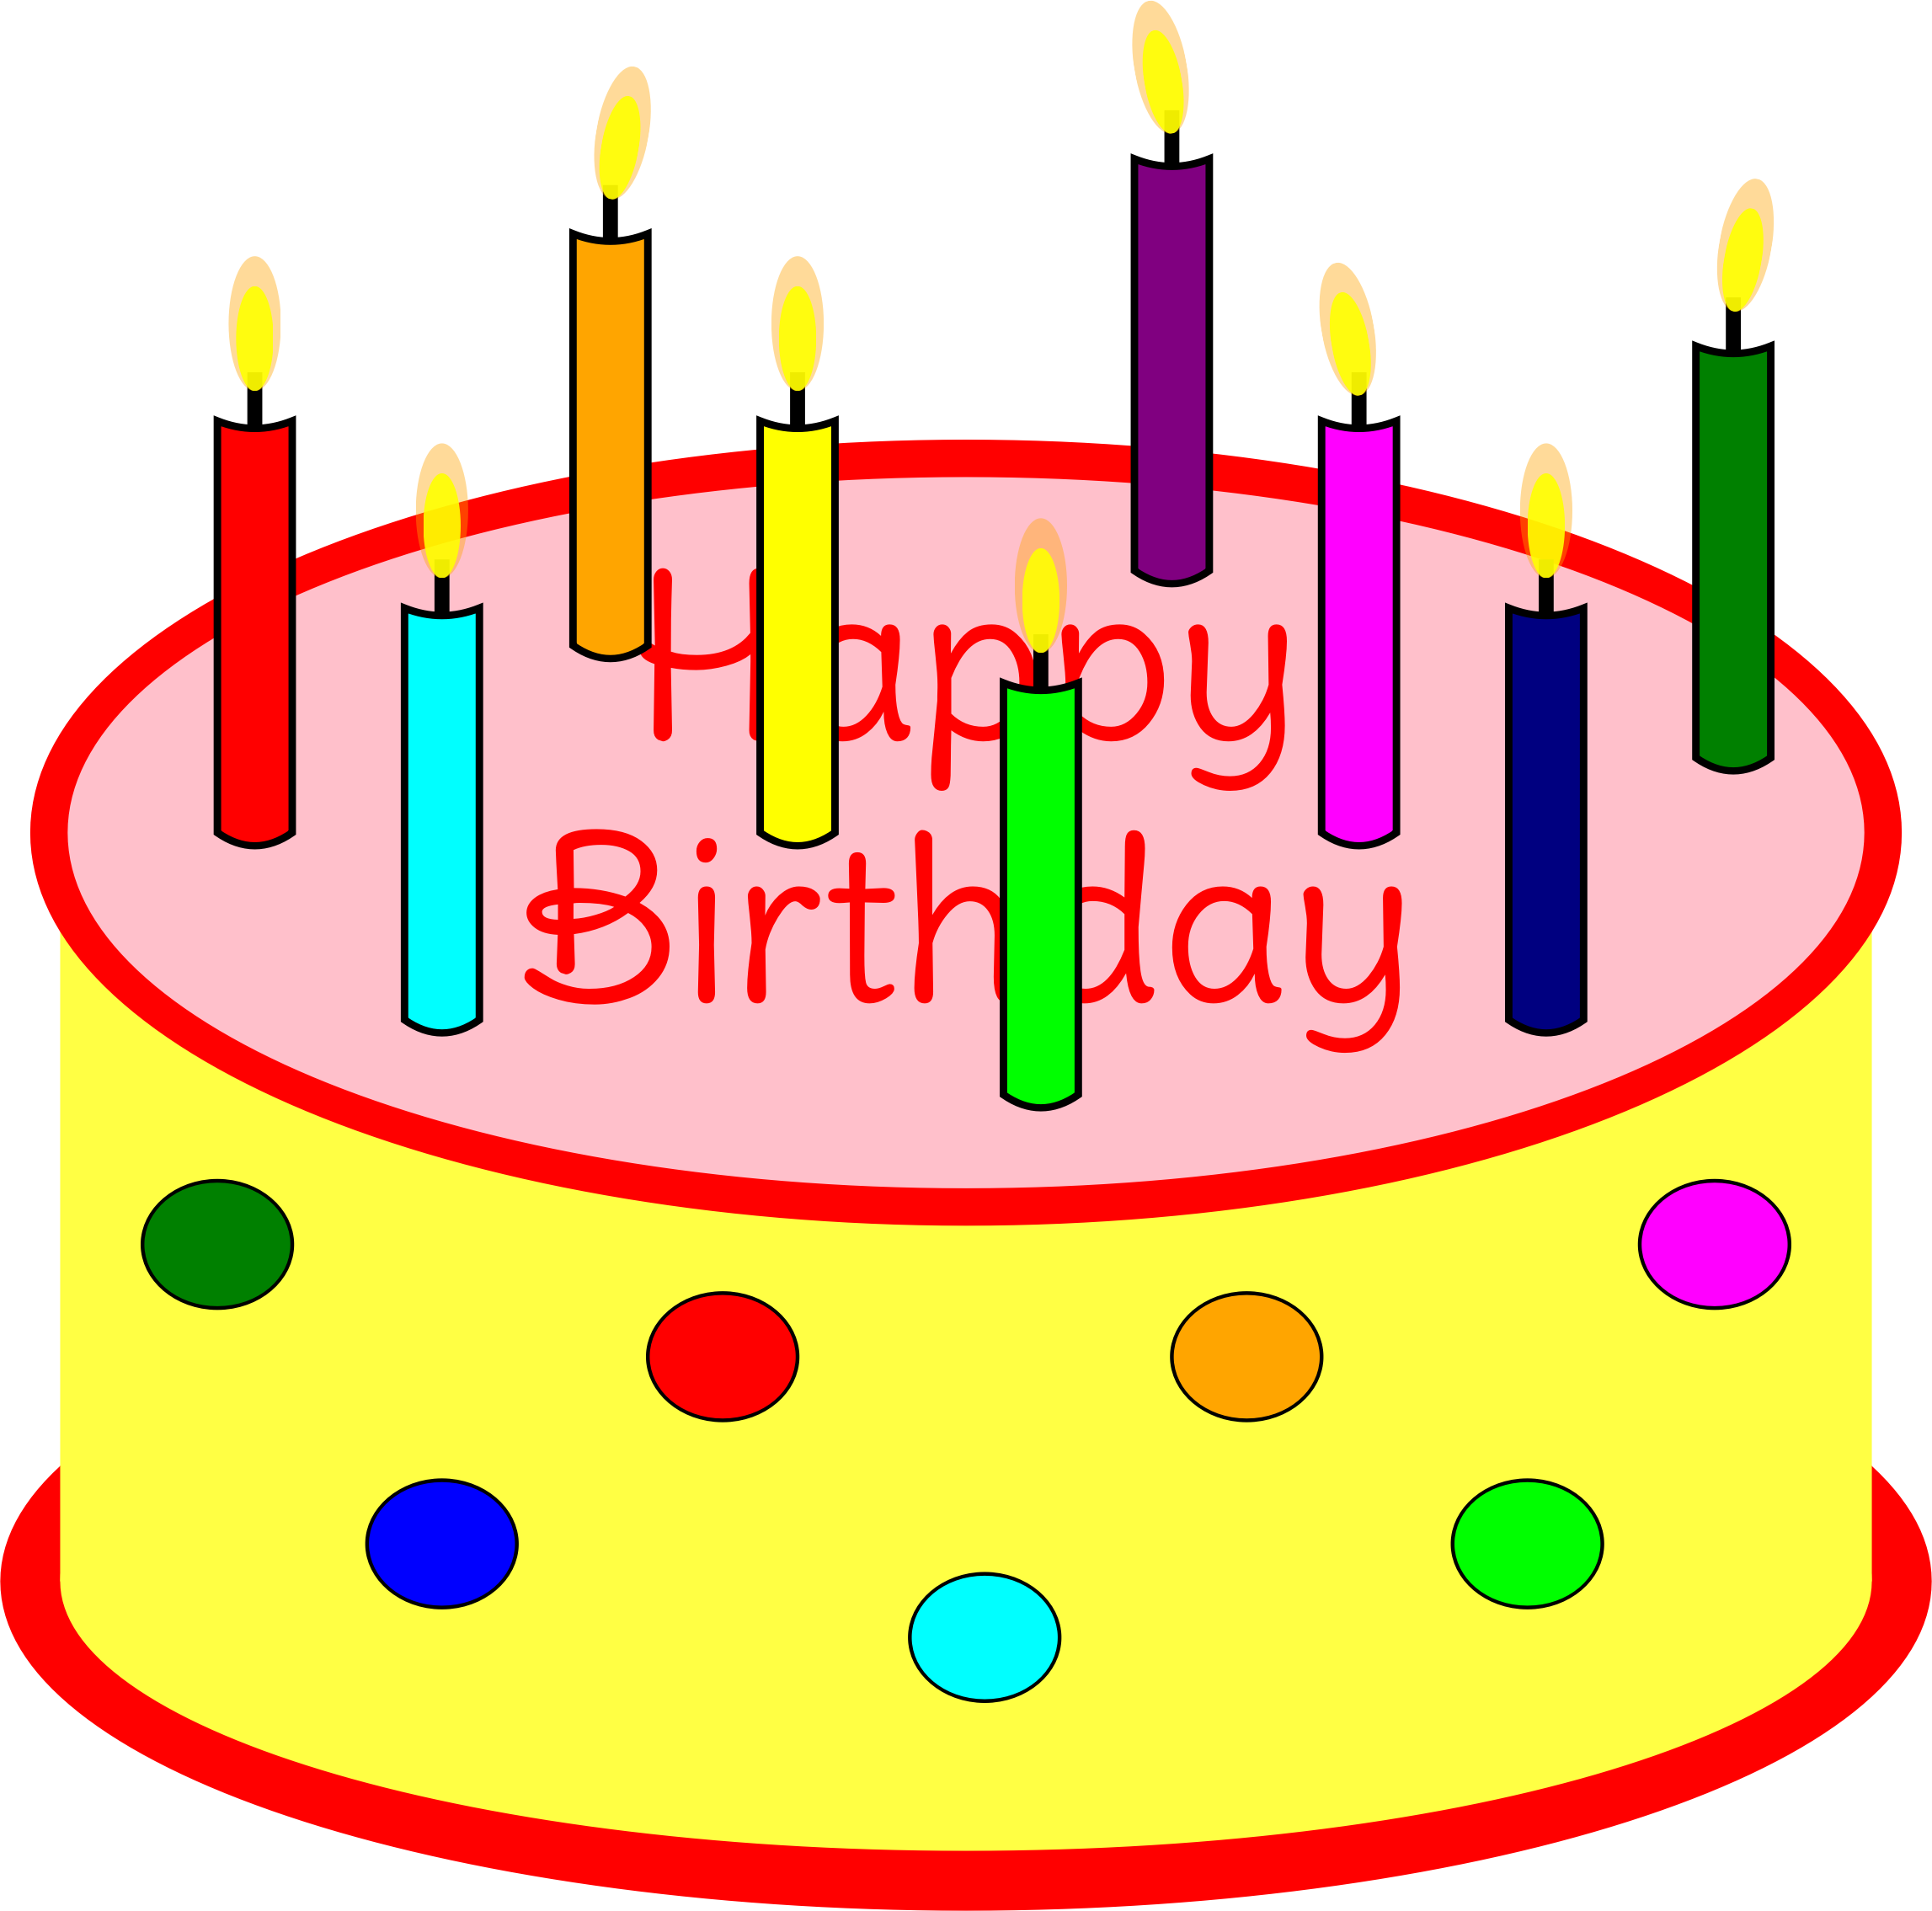 Birthday cake graphics clip art picture transparent stock Clipart - Flickering Candle Birthday Cake picture transparent stock